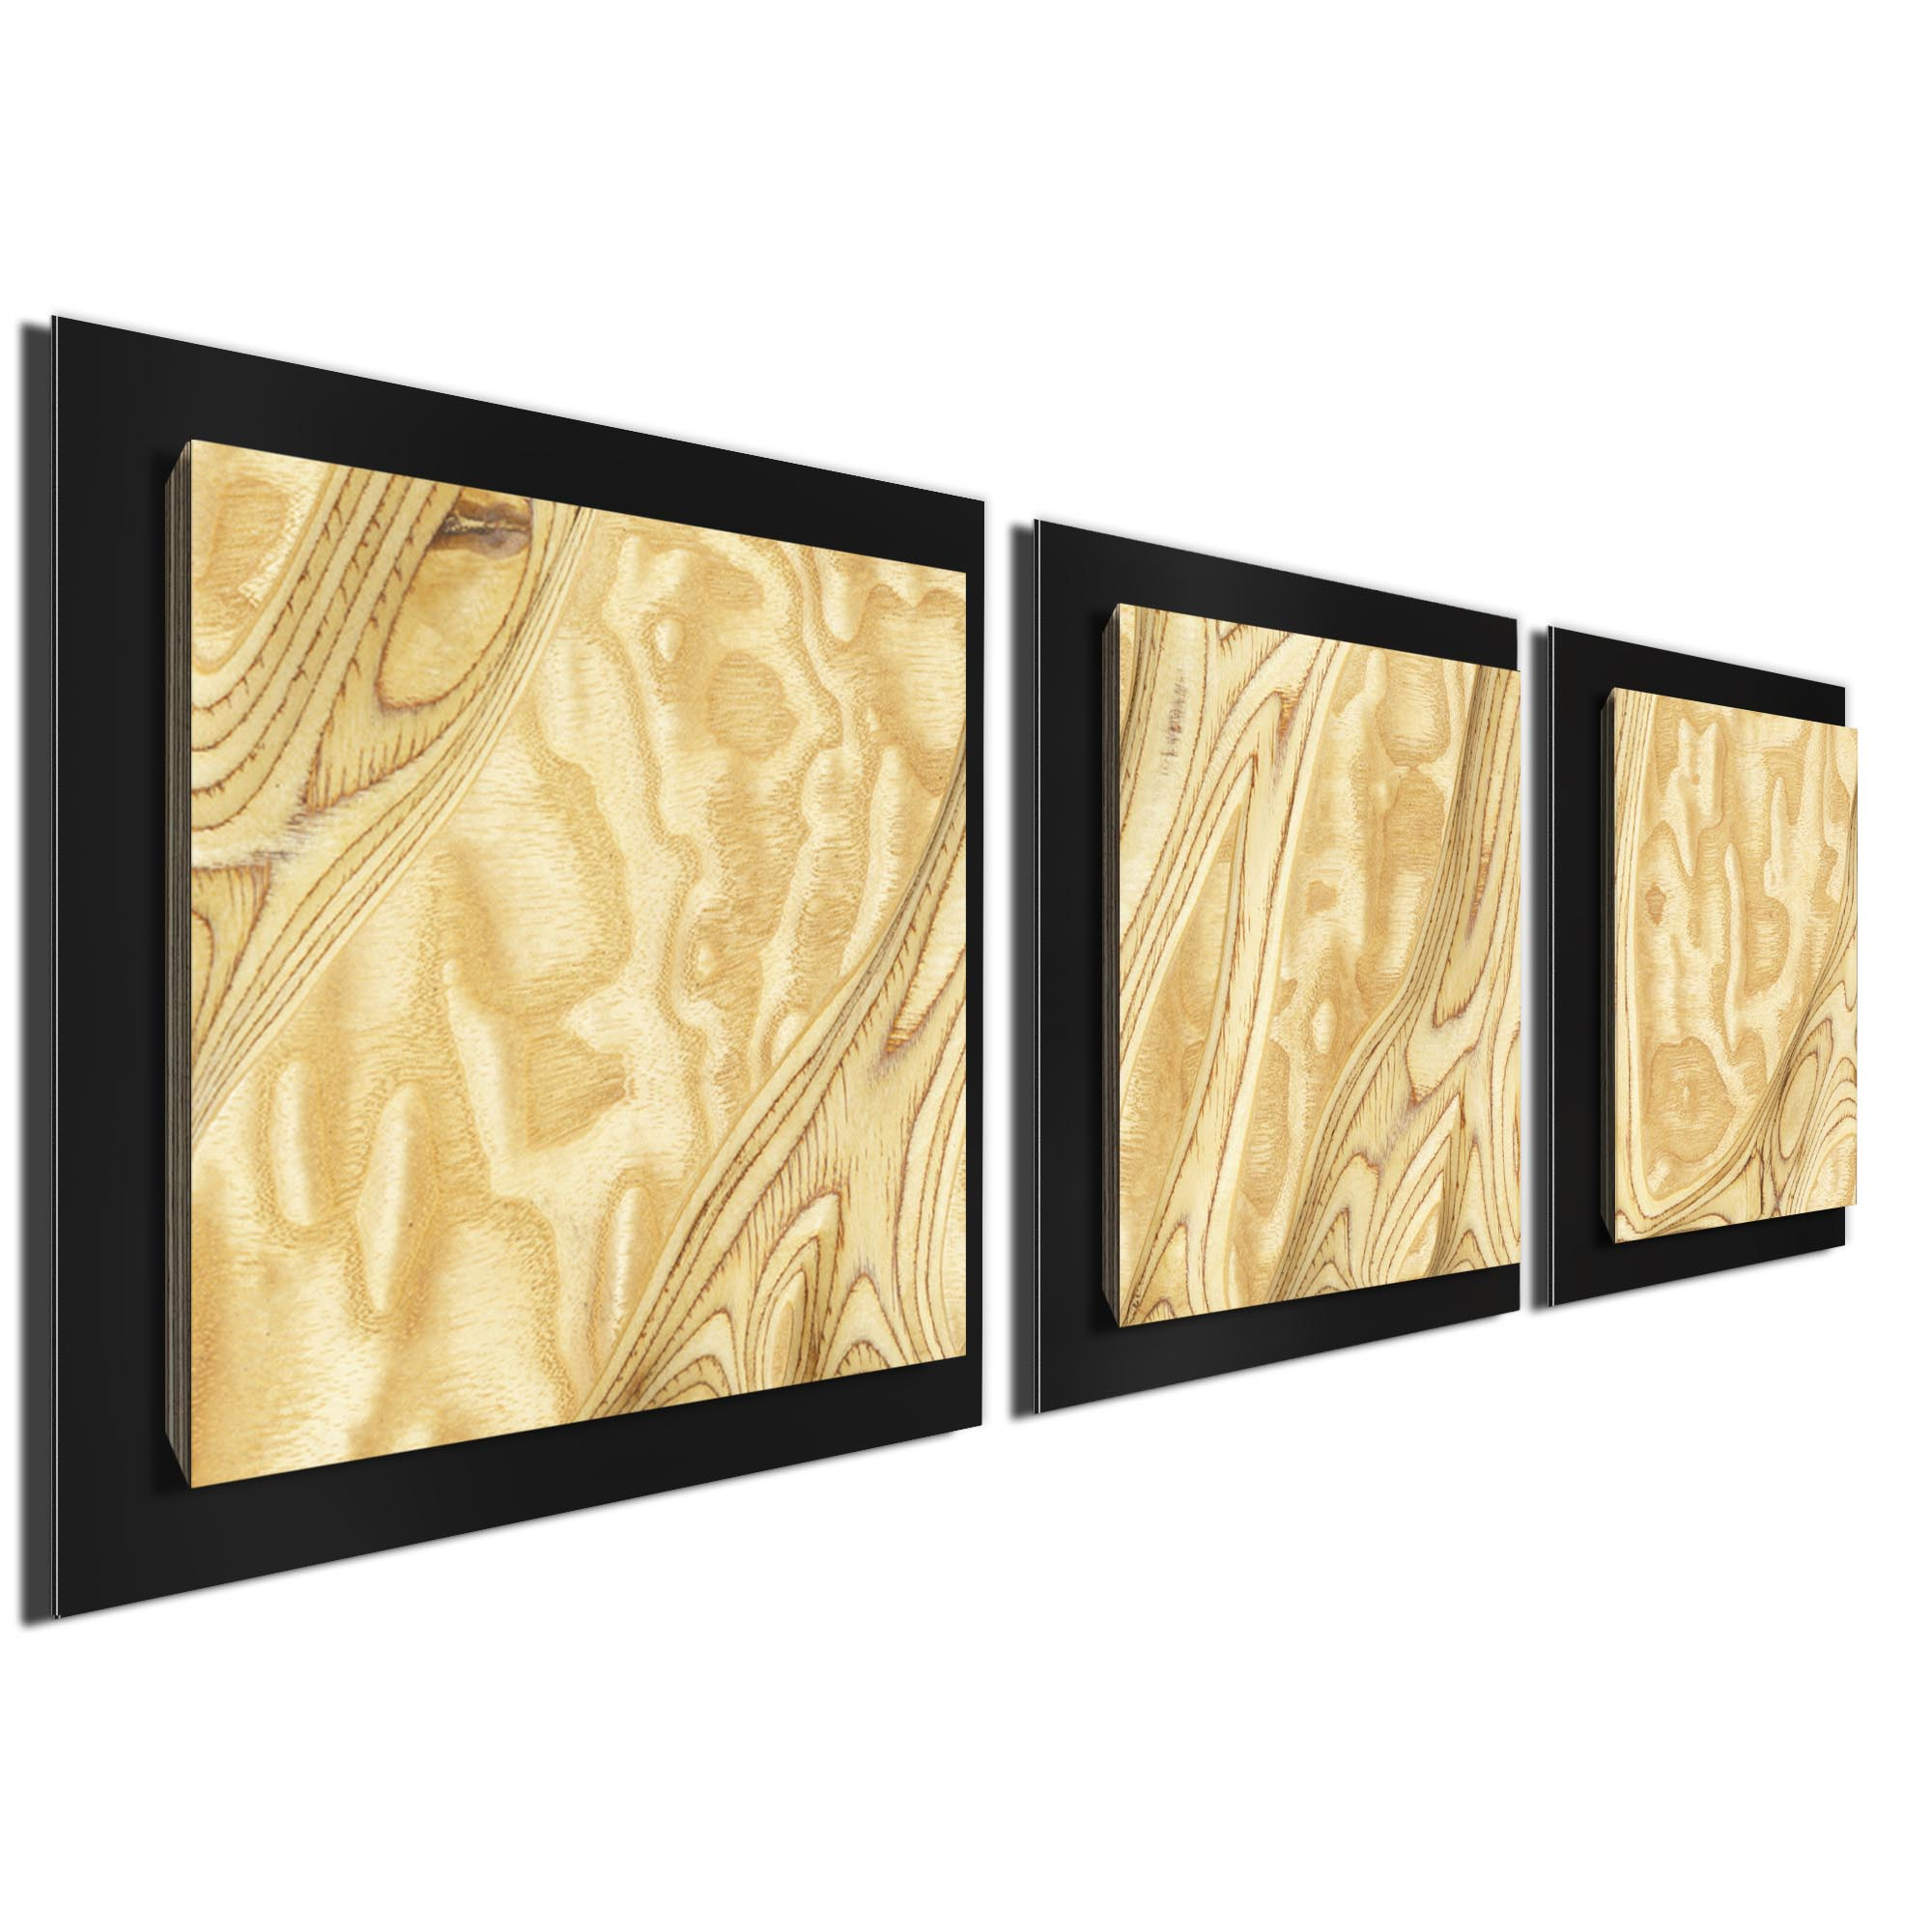 Natural Burl Essence Black by Jackson Wright Rustic Modern Style Wood Wall Art - Image 2